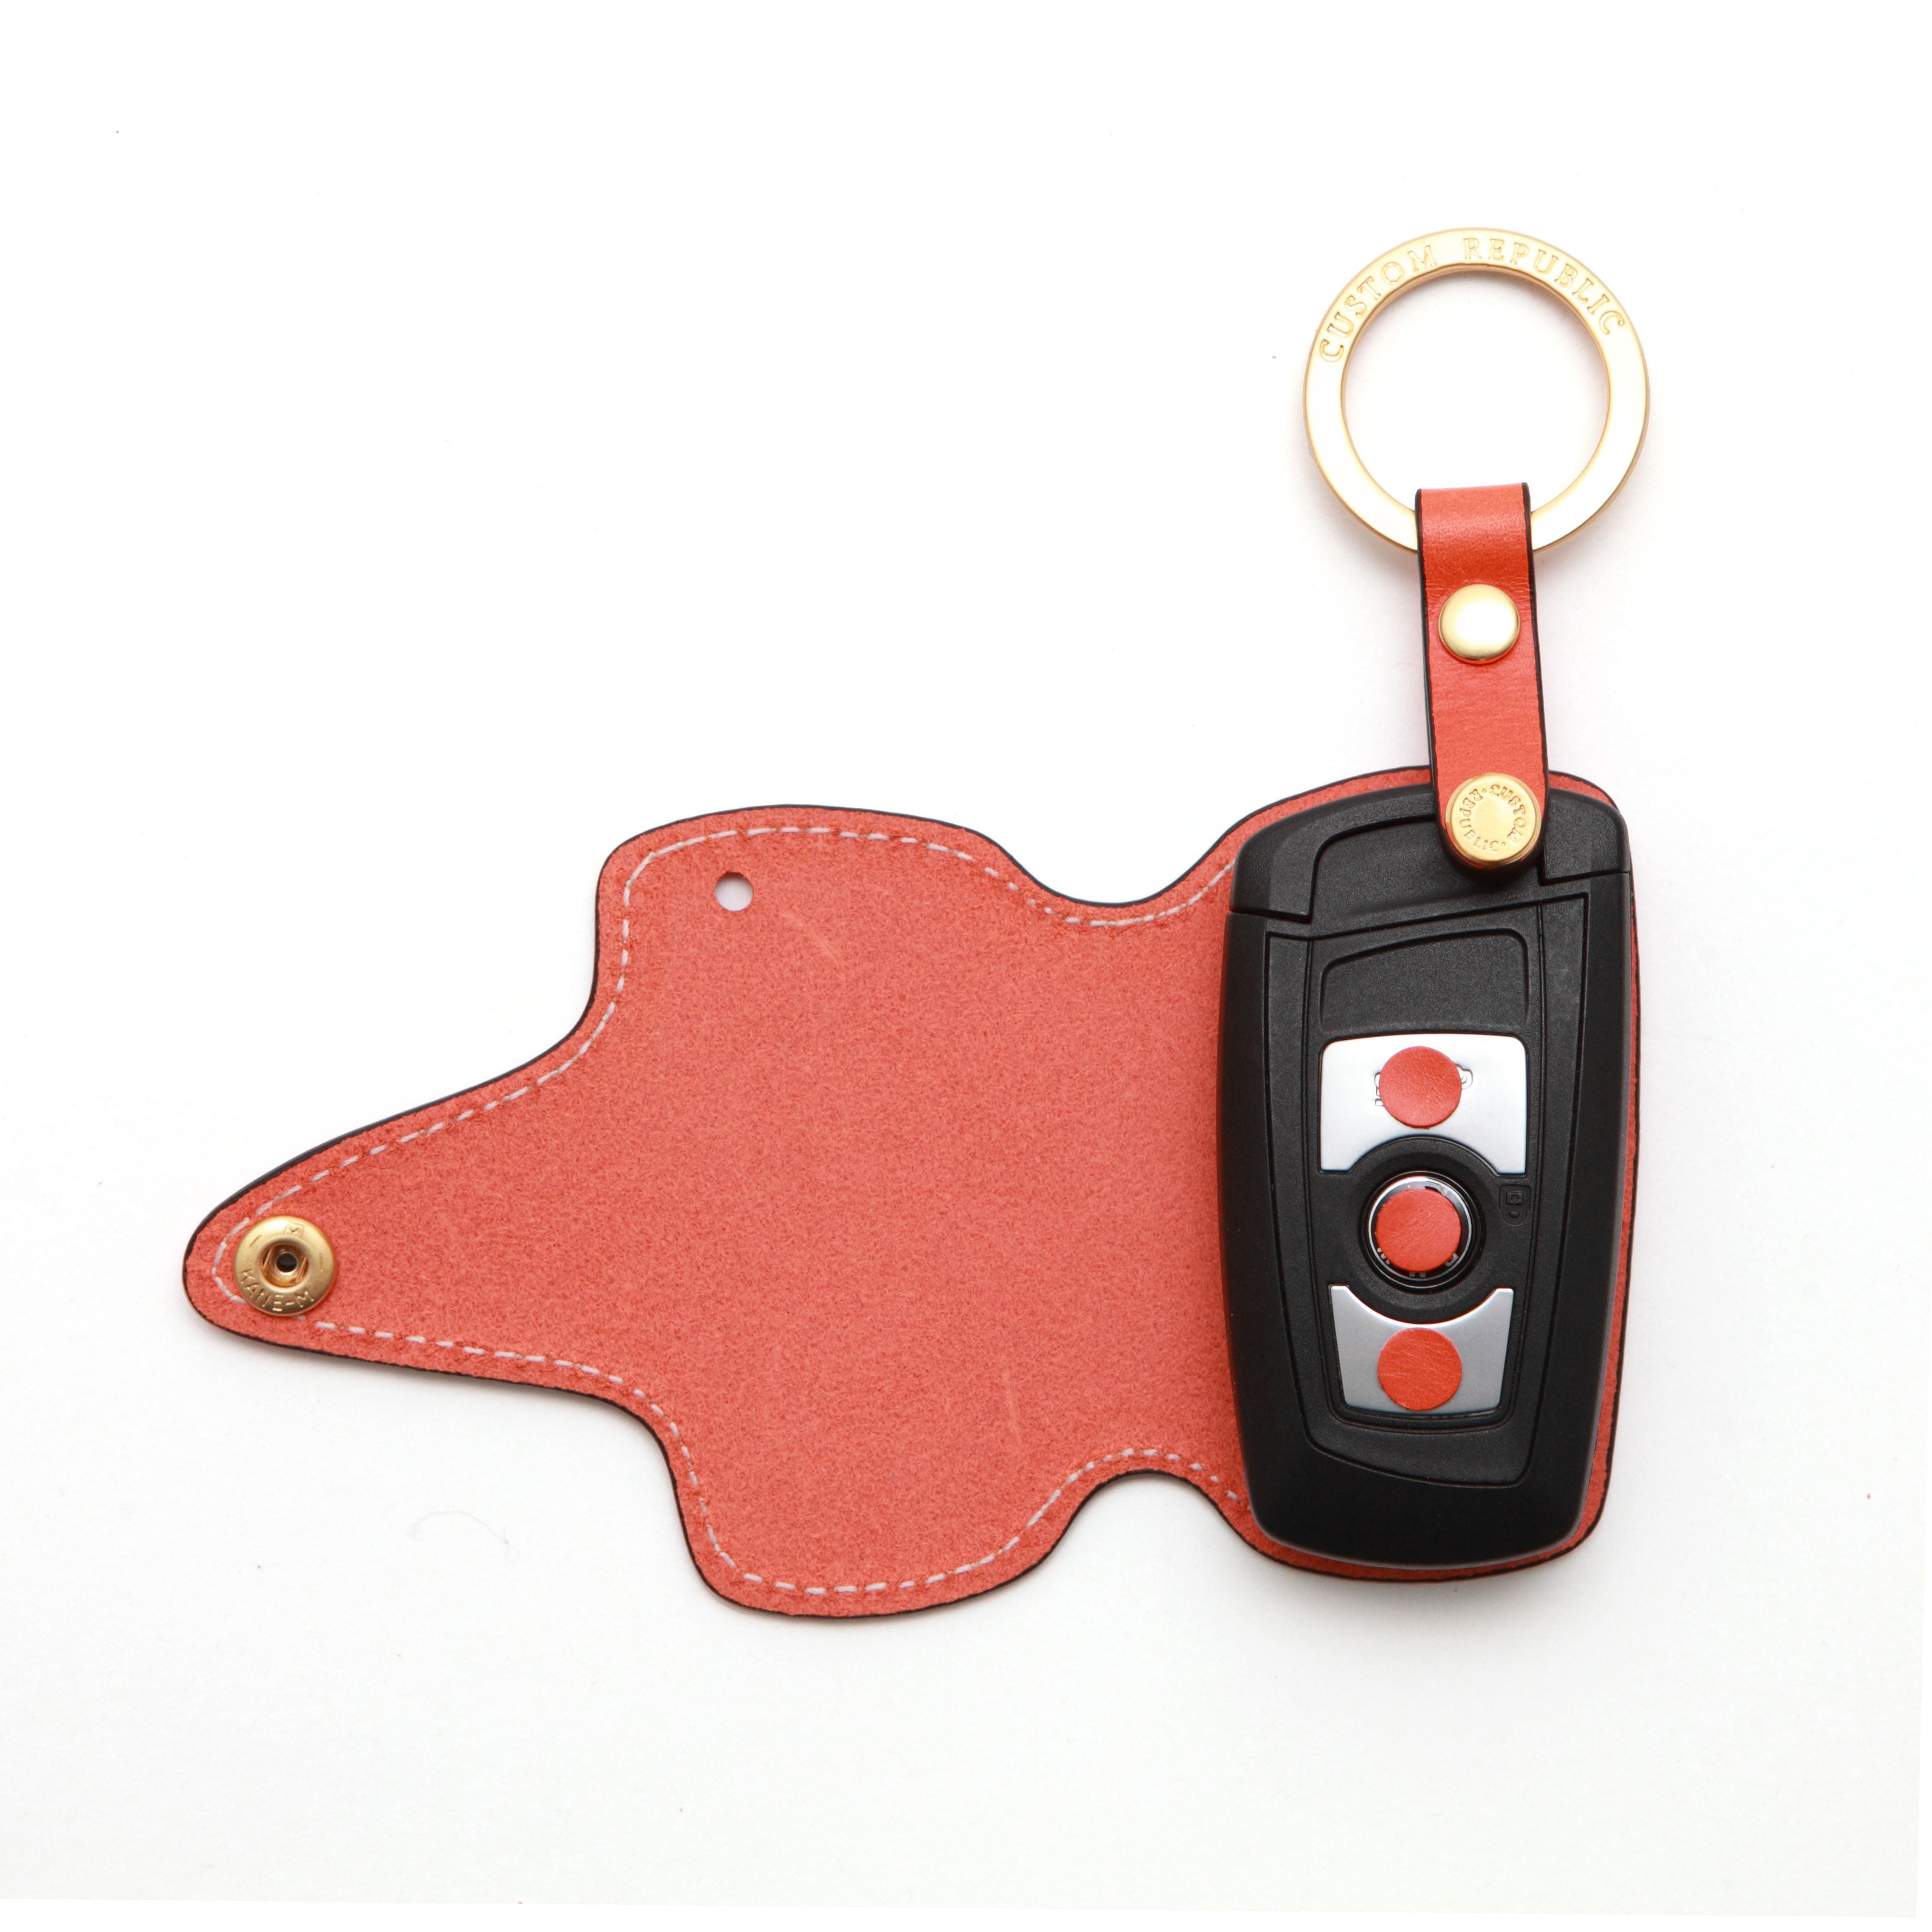 BMW 13 series Buttero leather keycase from Custom